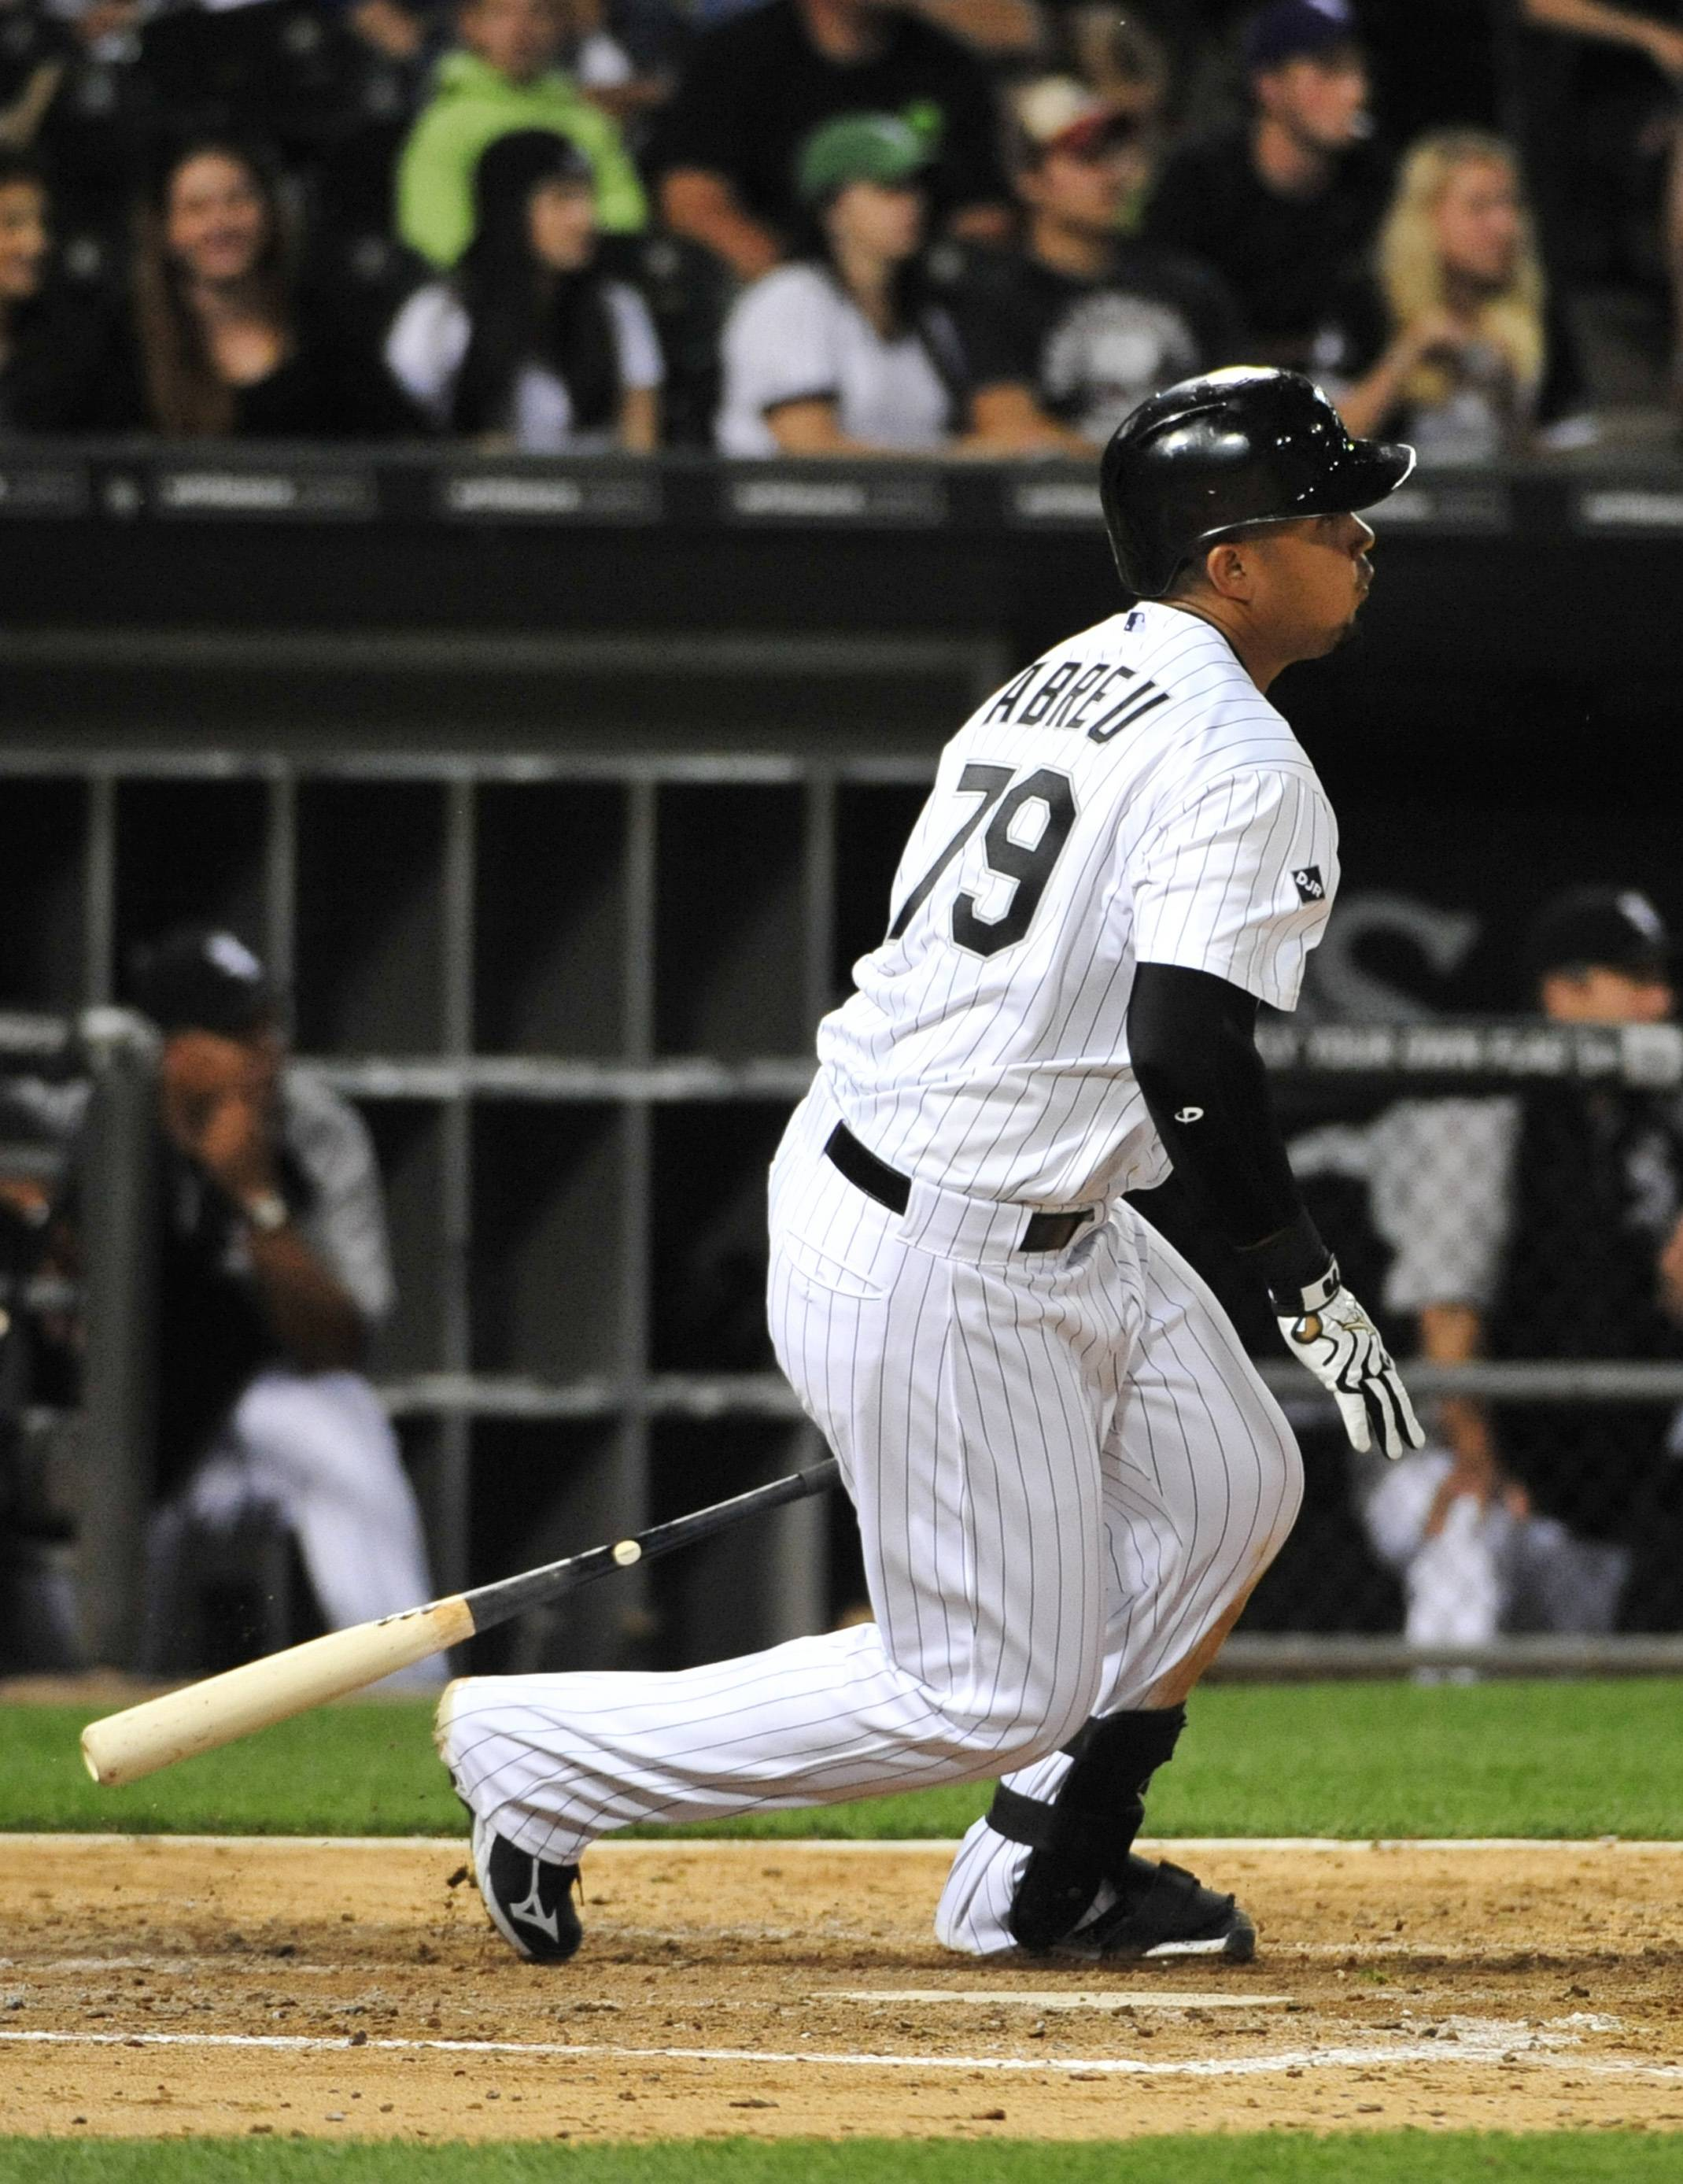 The White Sox's Jose Abreu reached base five times, extending his hitting streak to 21 games, during Friday night's game against the Minnesota Twins. The Sox beat the Twins 10-8 at U.S. Cellular Field.